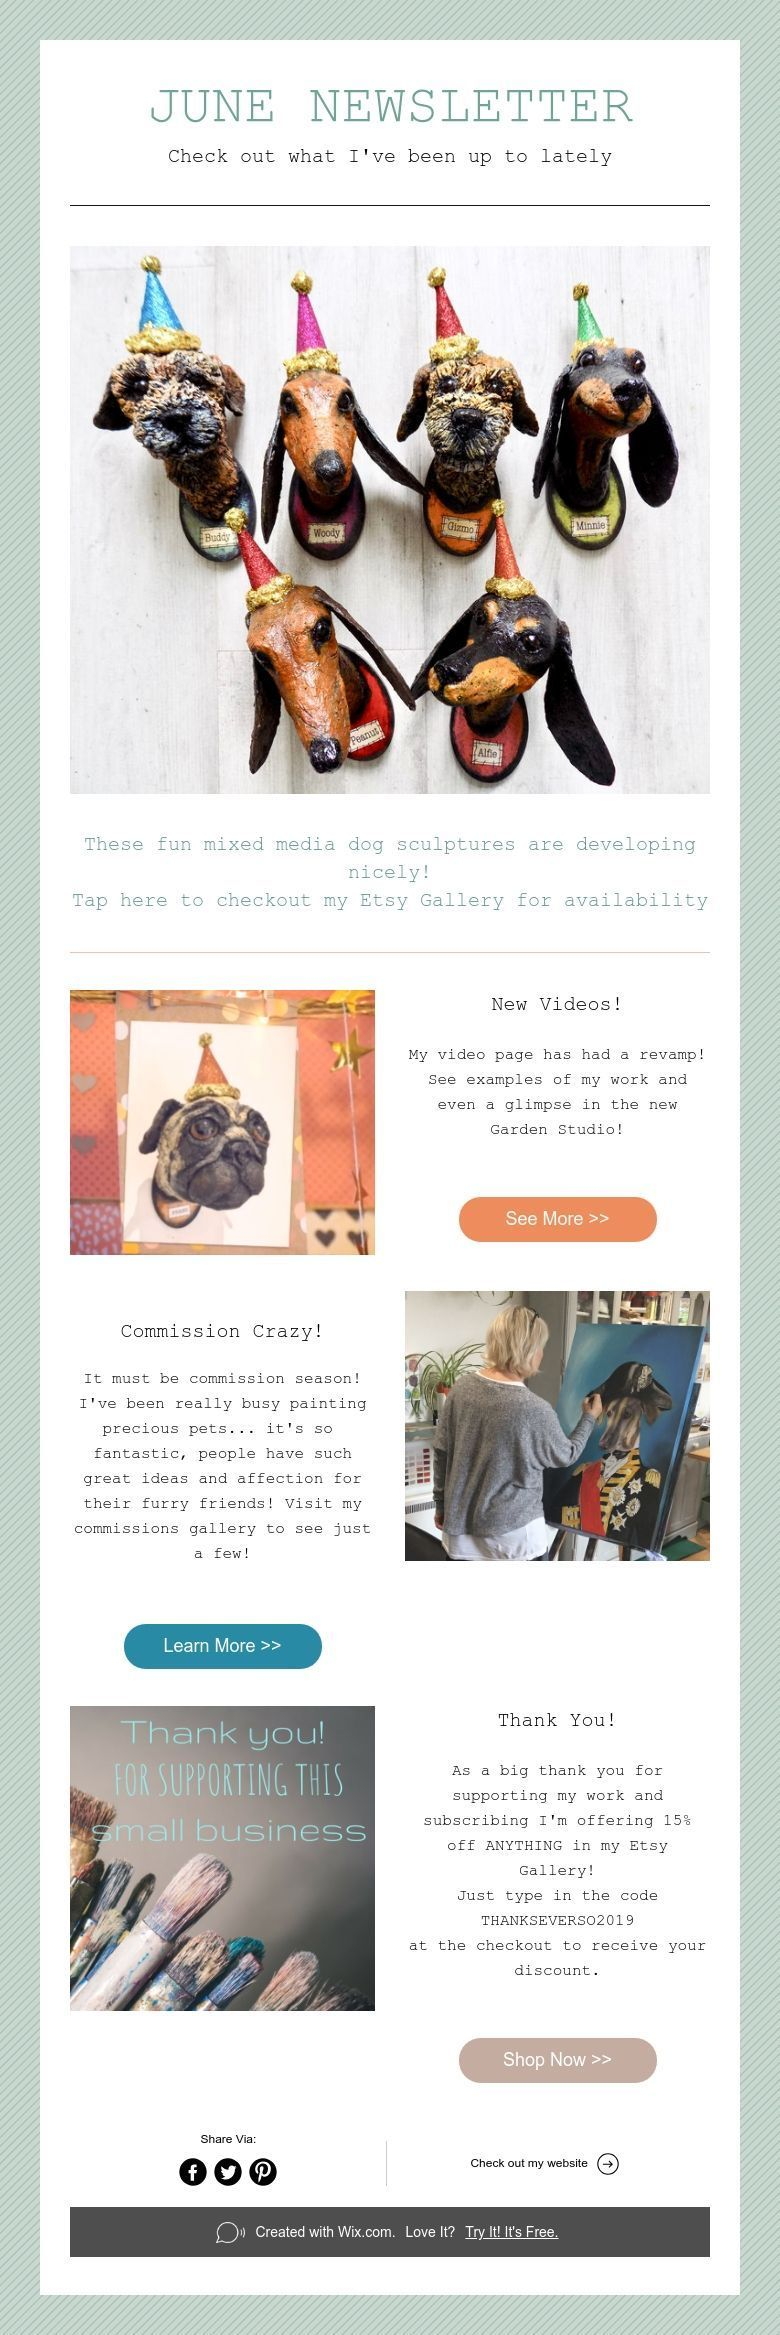 JUNE NEWSLETTER Check out what I've been up to lately